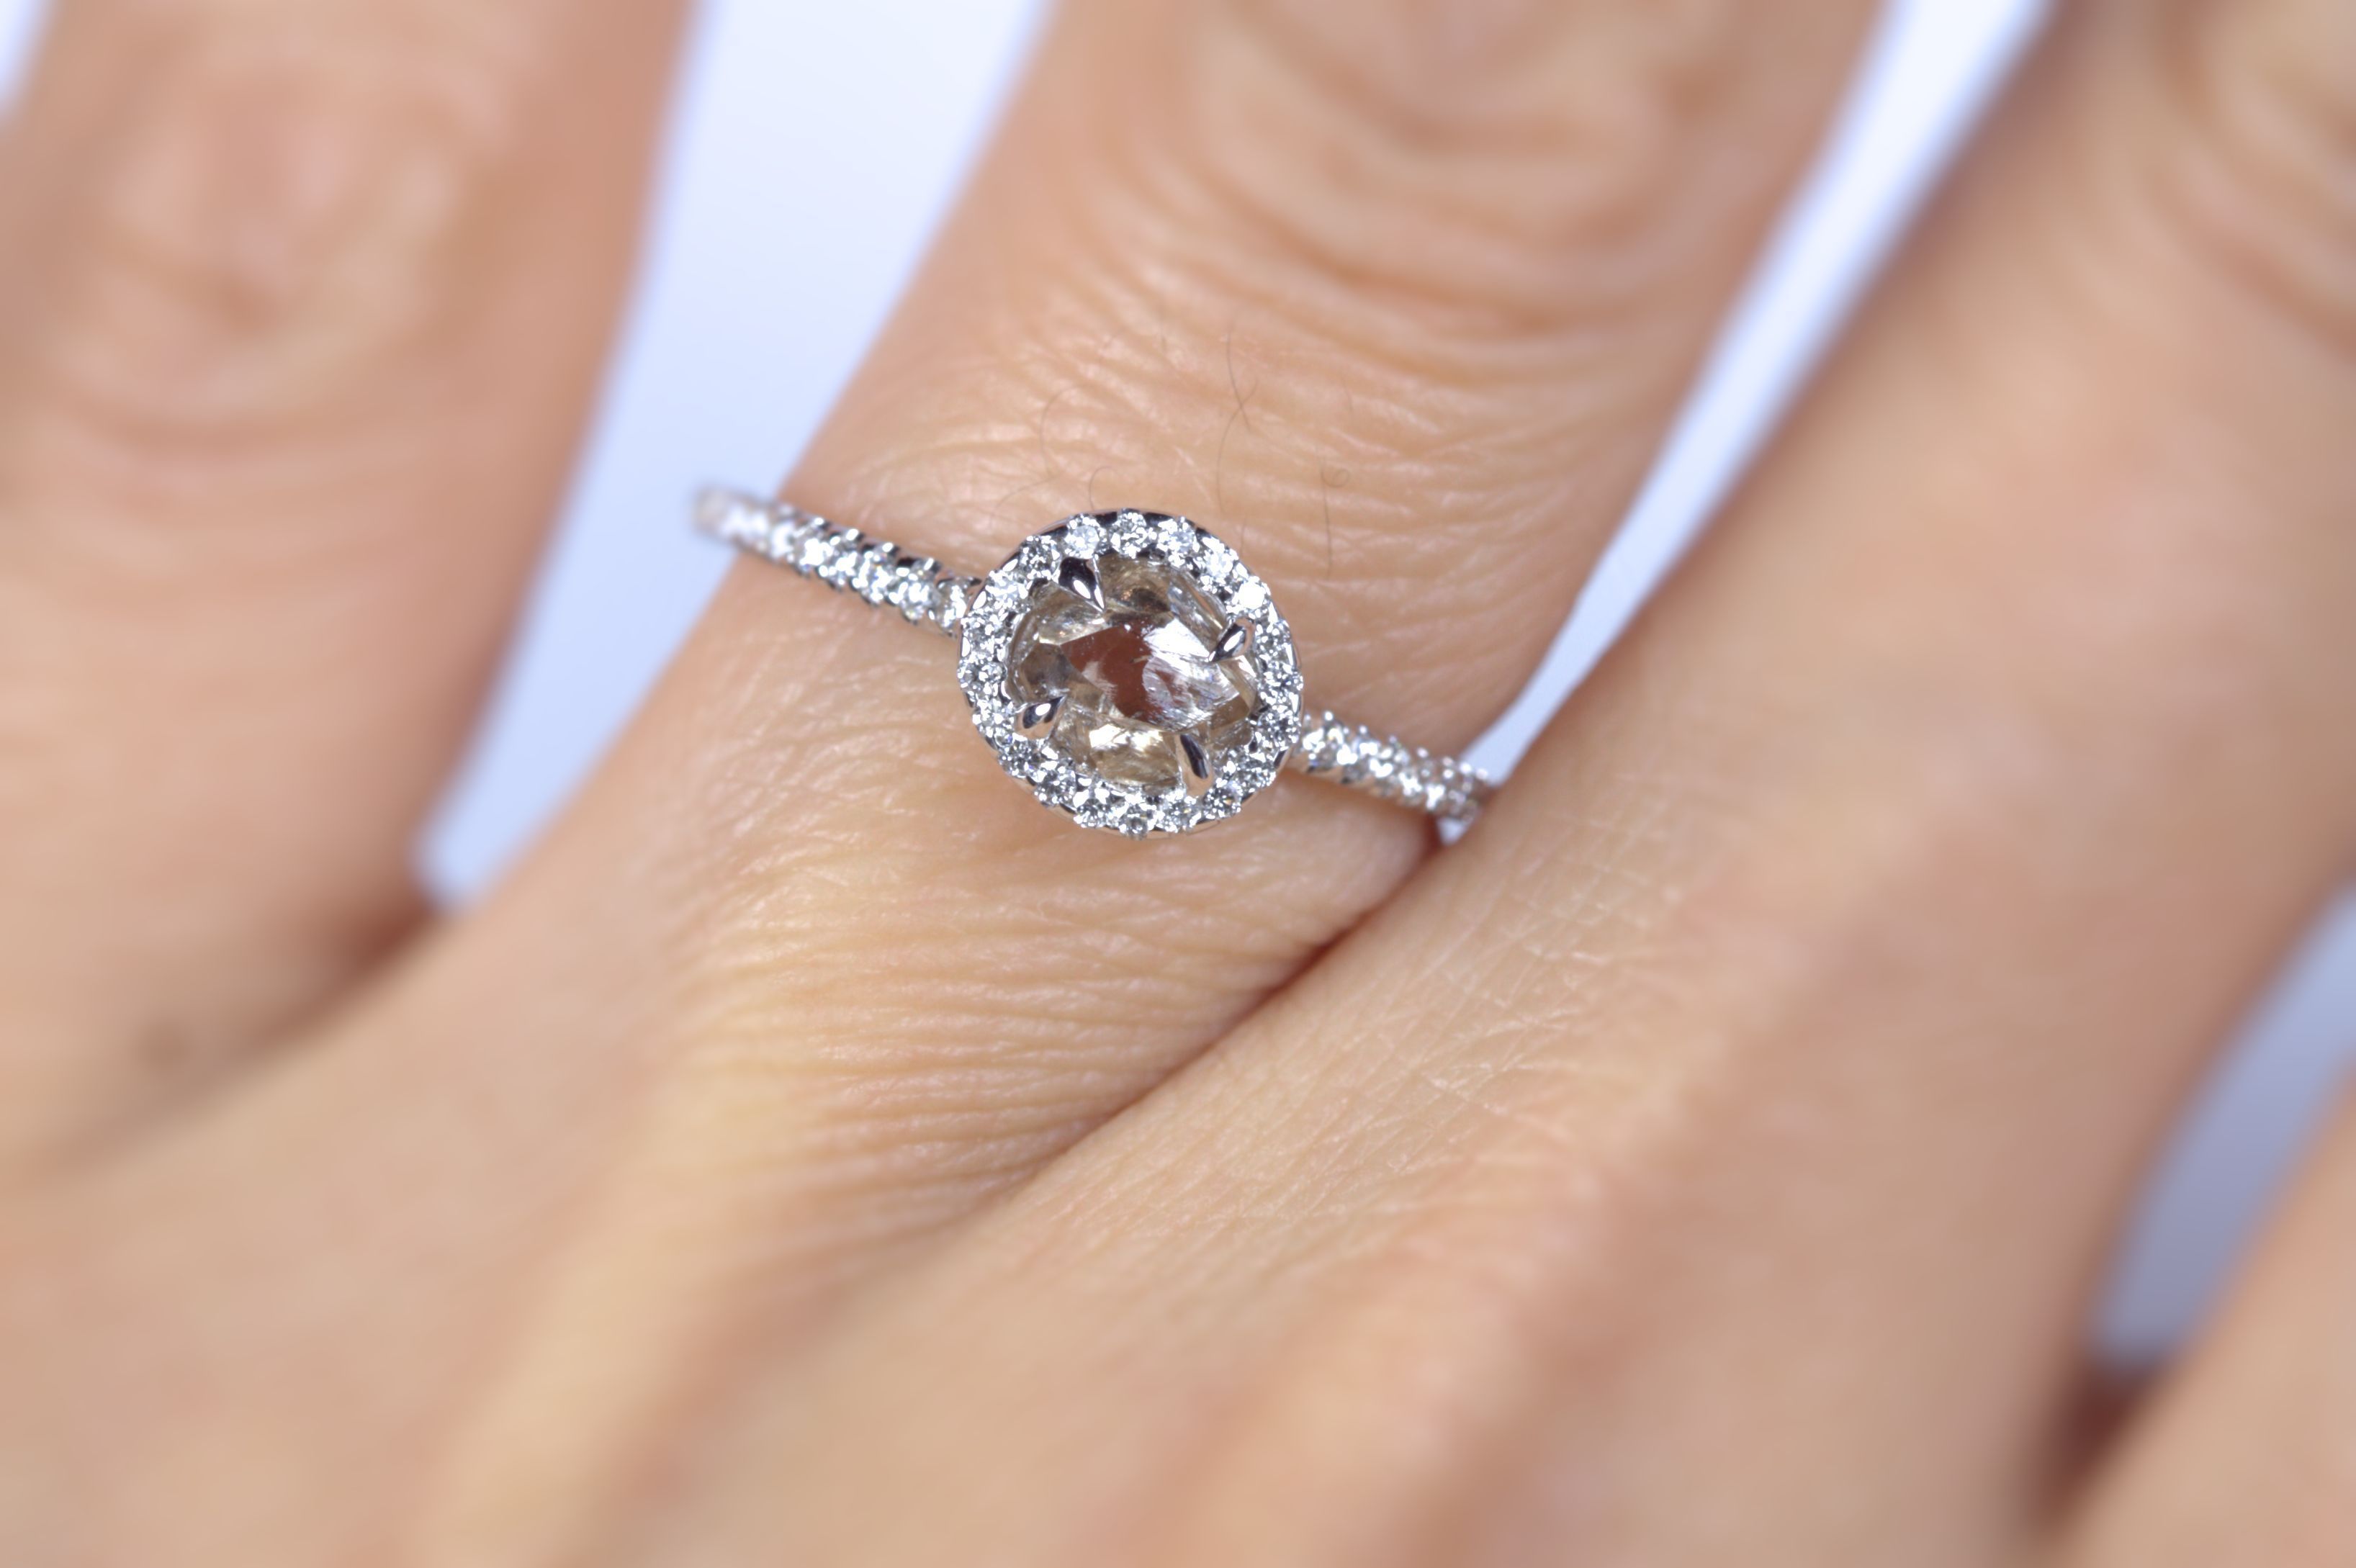 Taupe Colored Rough Diamond Engagement Ring From Diamond In The